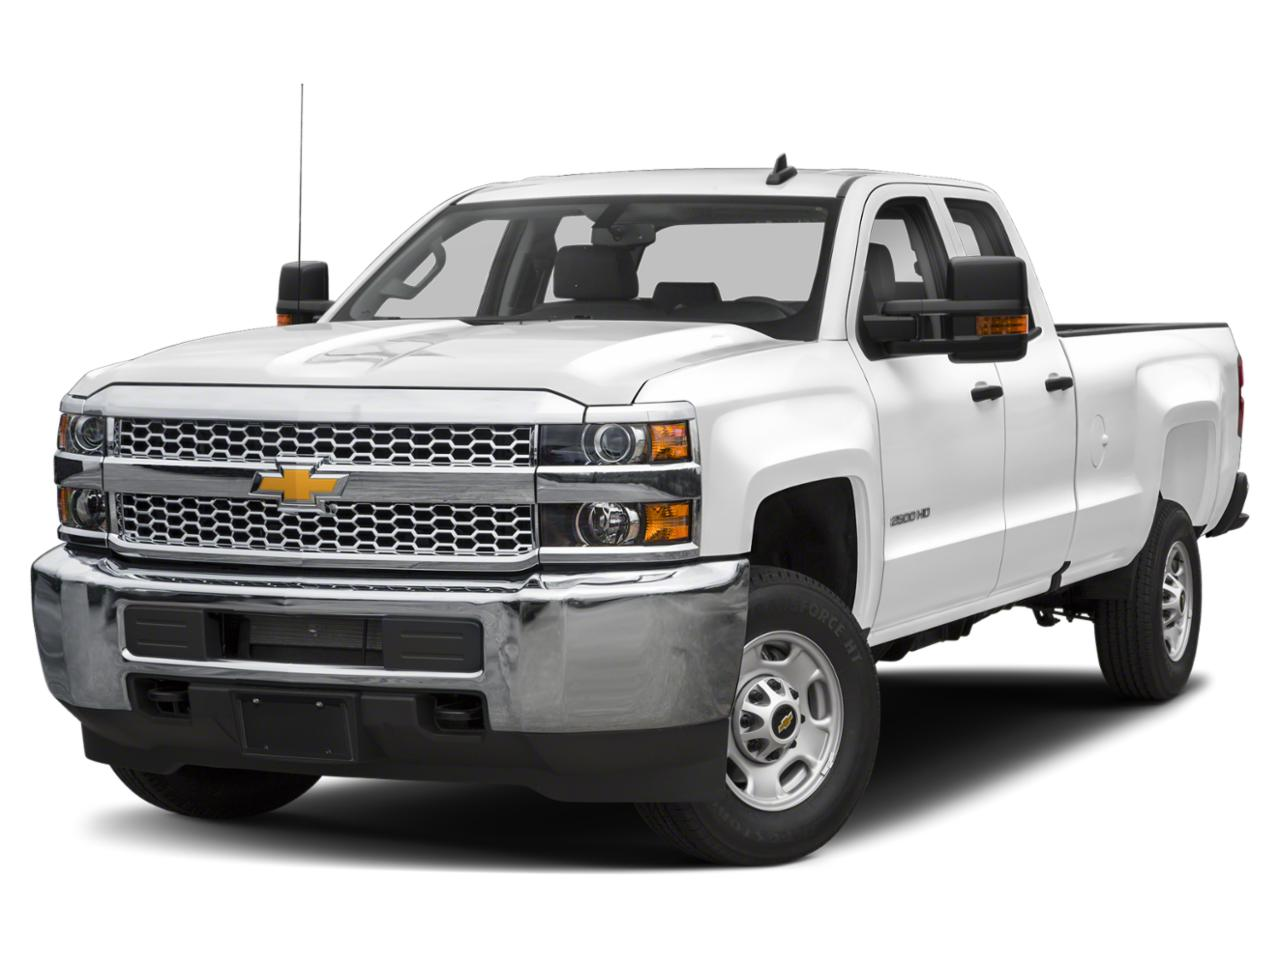 2019 Chevrolet Silverado 2500HD WORK TRUCK Extended Cab Pickup Slide